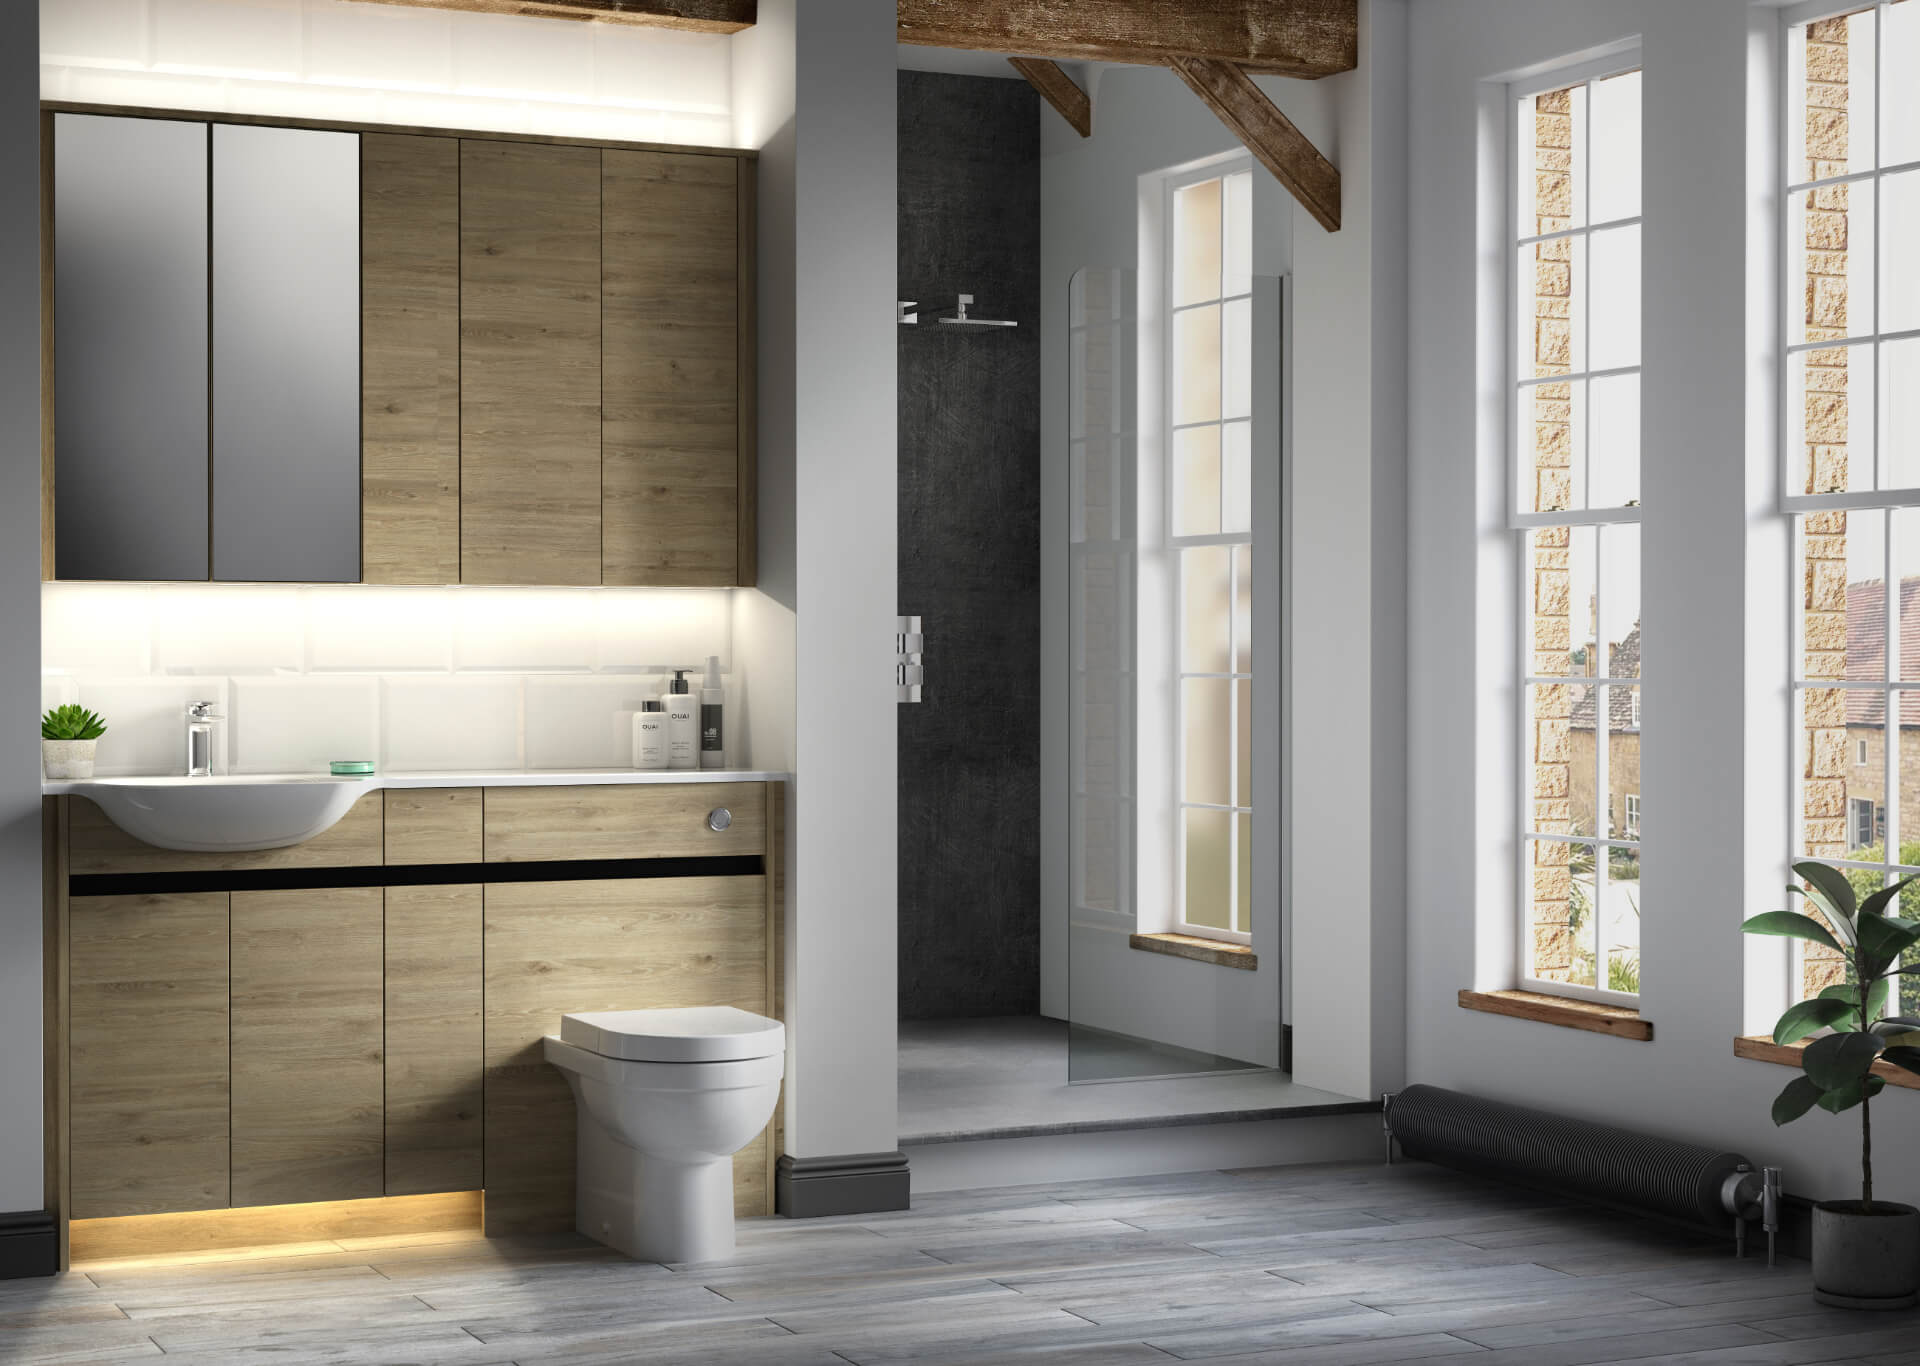 Utopia Bathroom Contemporary Fitted Wooden Bathroom